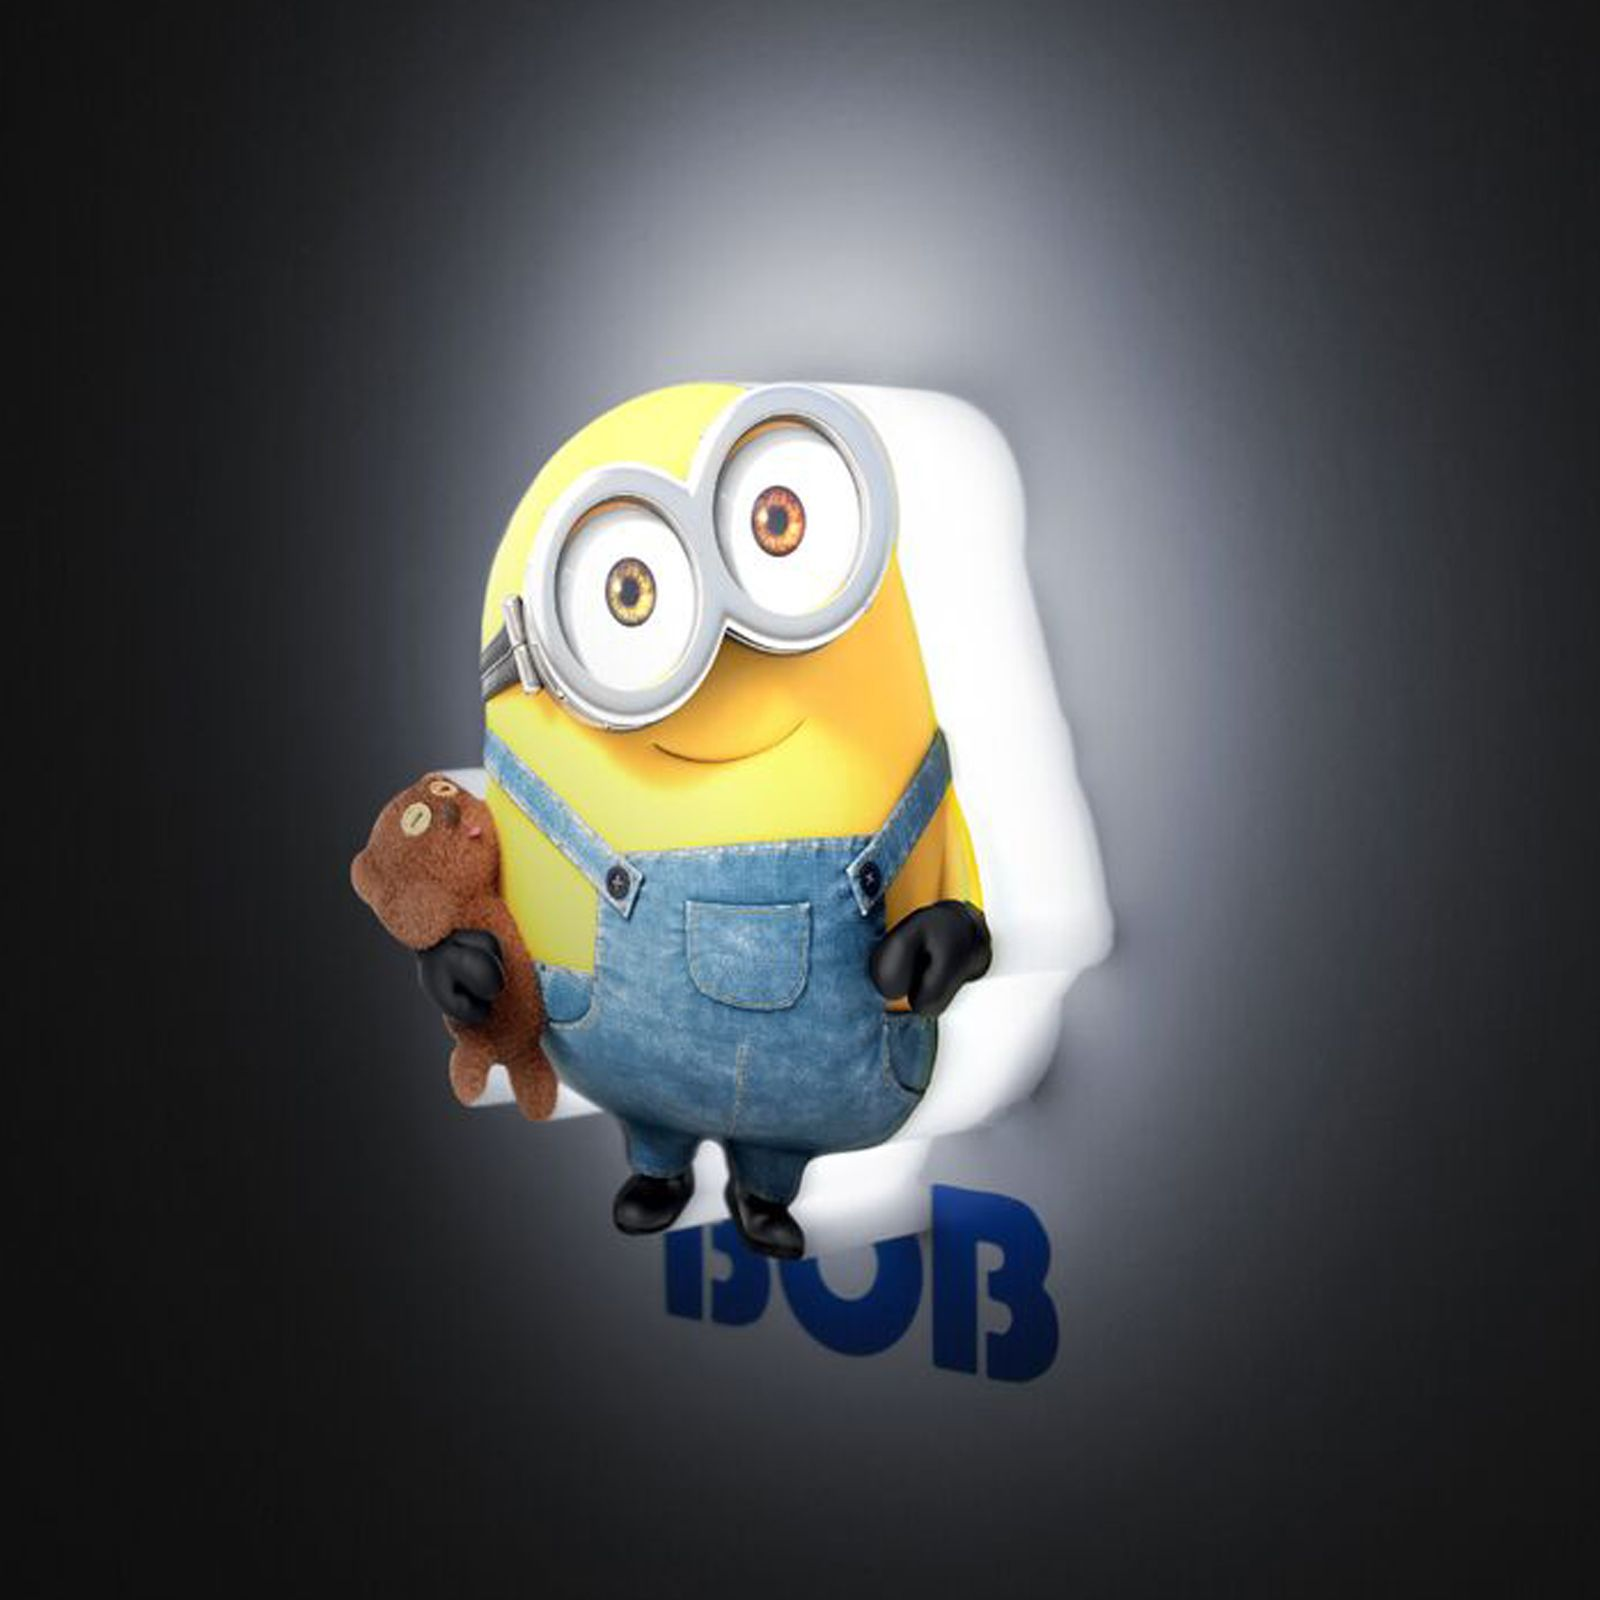 3d-Mini-LED-Aplique-Pared-dormitorio-infantil-ILUMINACIoN-MINIONS-STAR-WARS